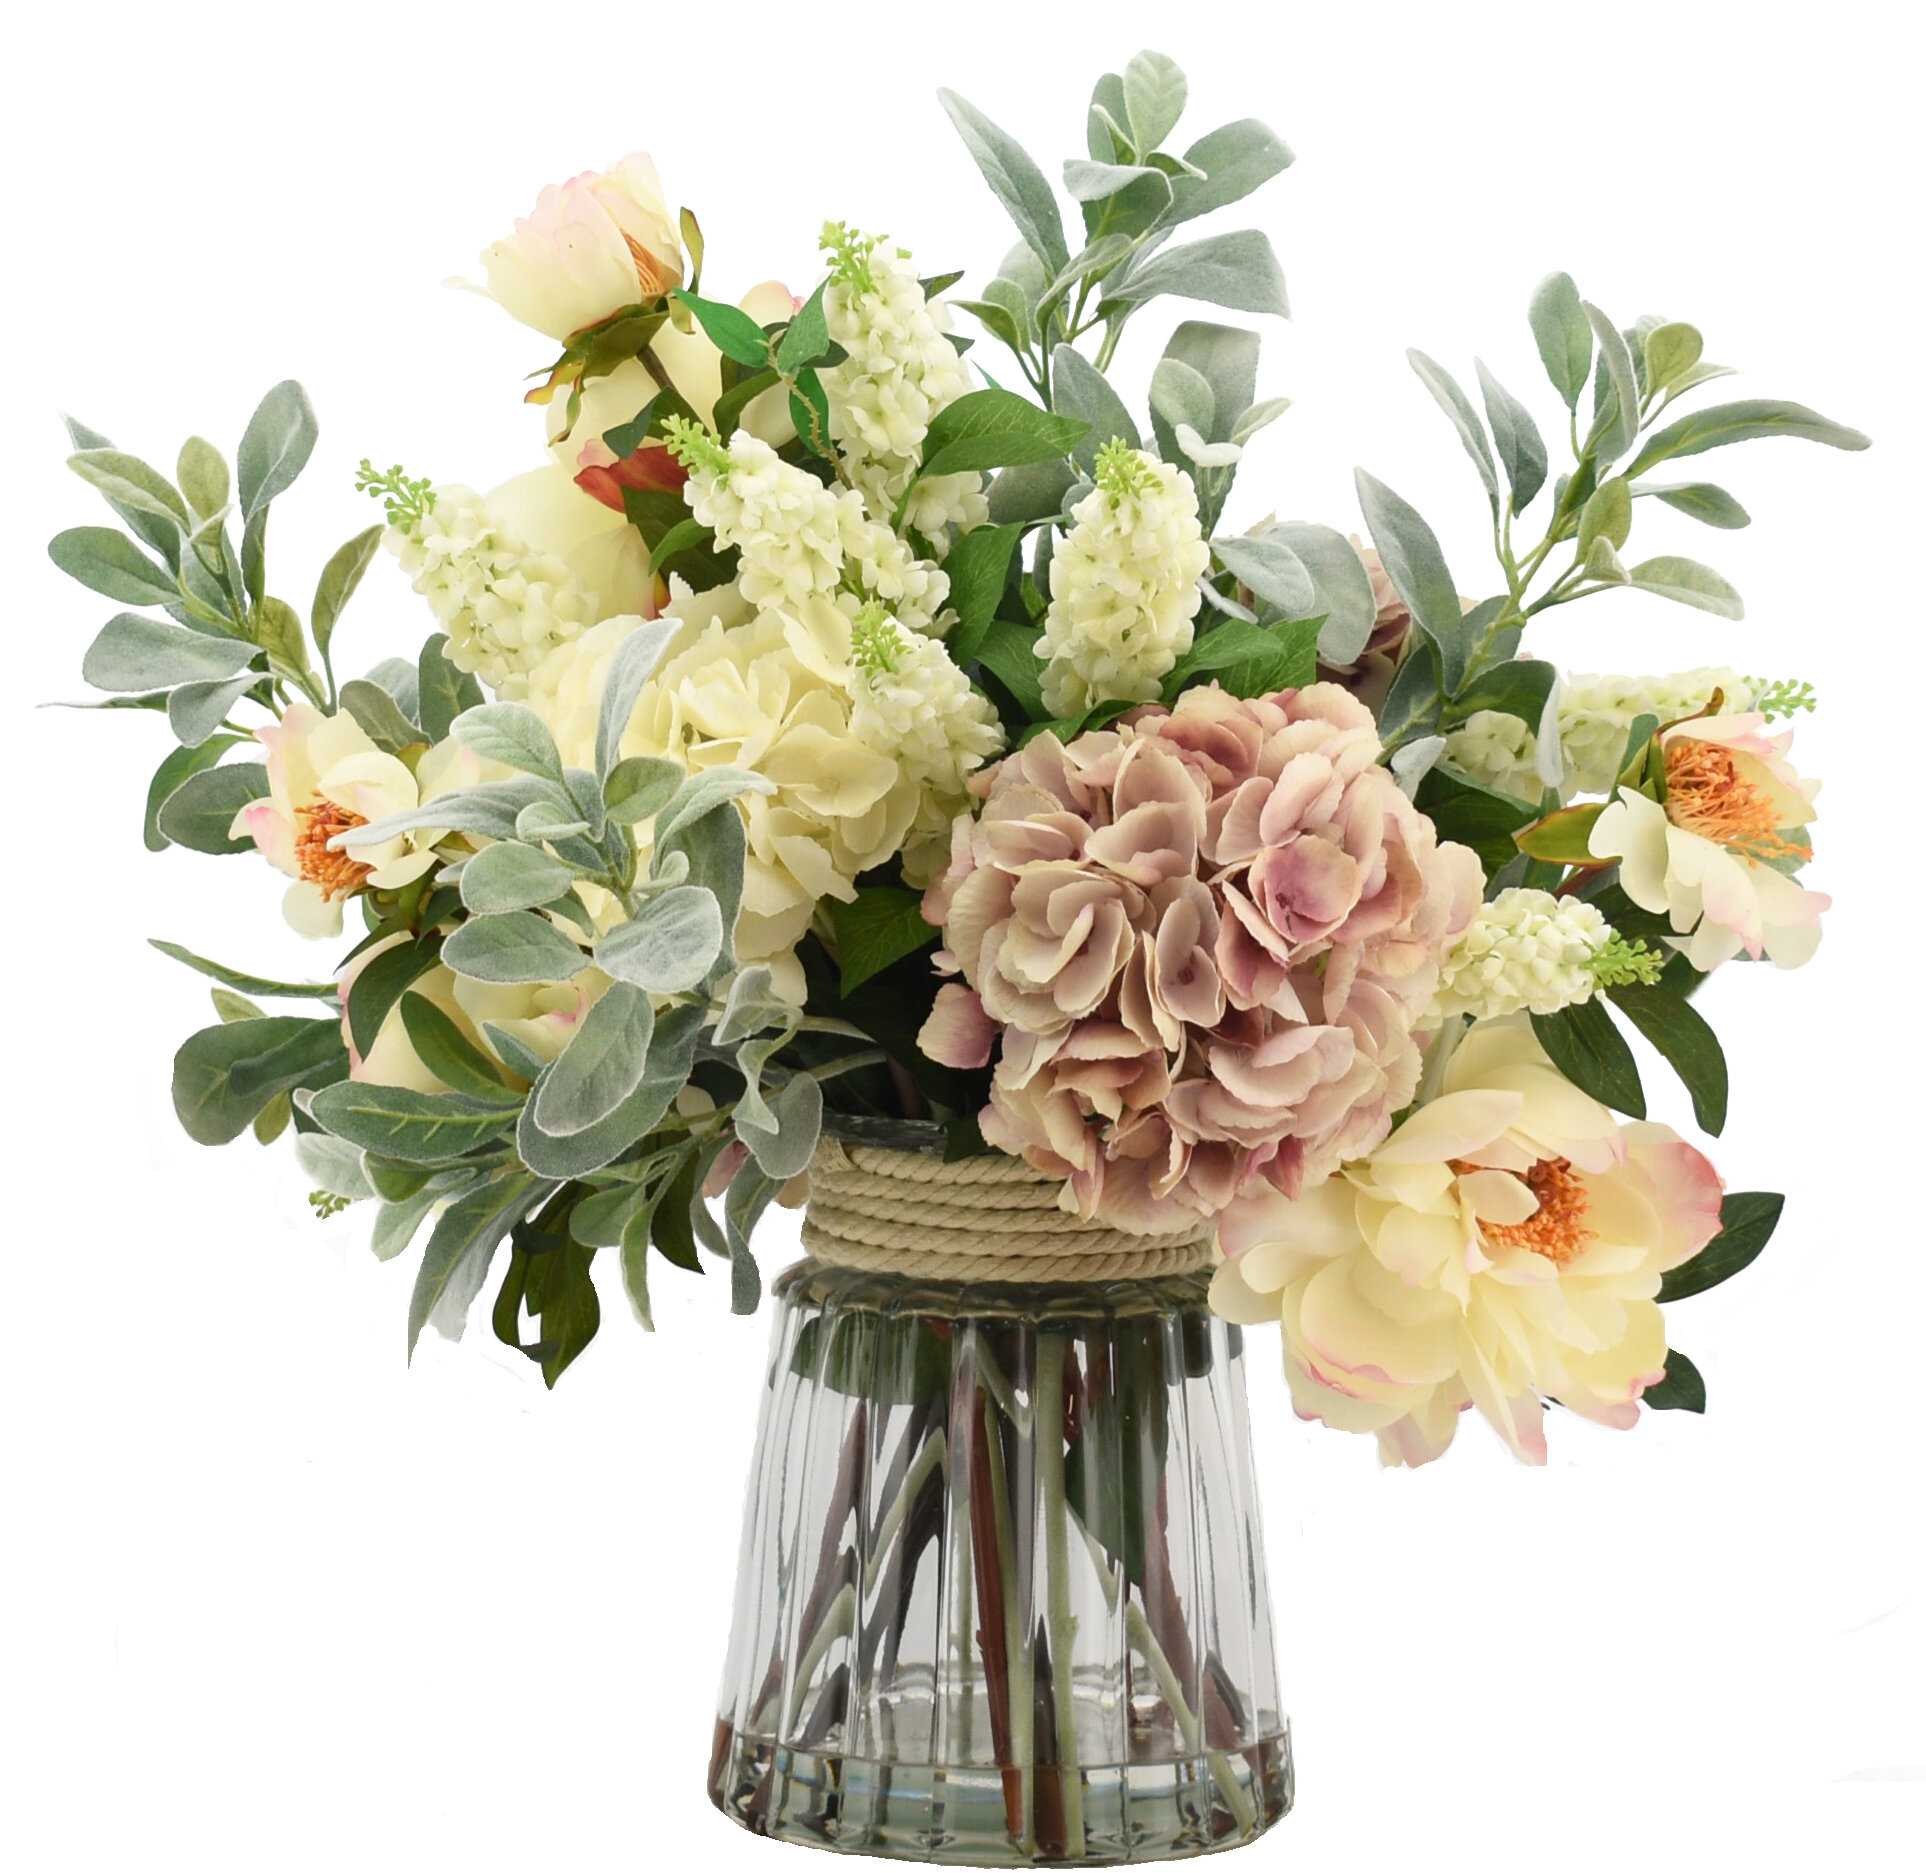 Creative Displays Inc Mixed Floral Arrangement In Glass Vase Perigold